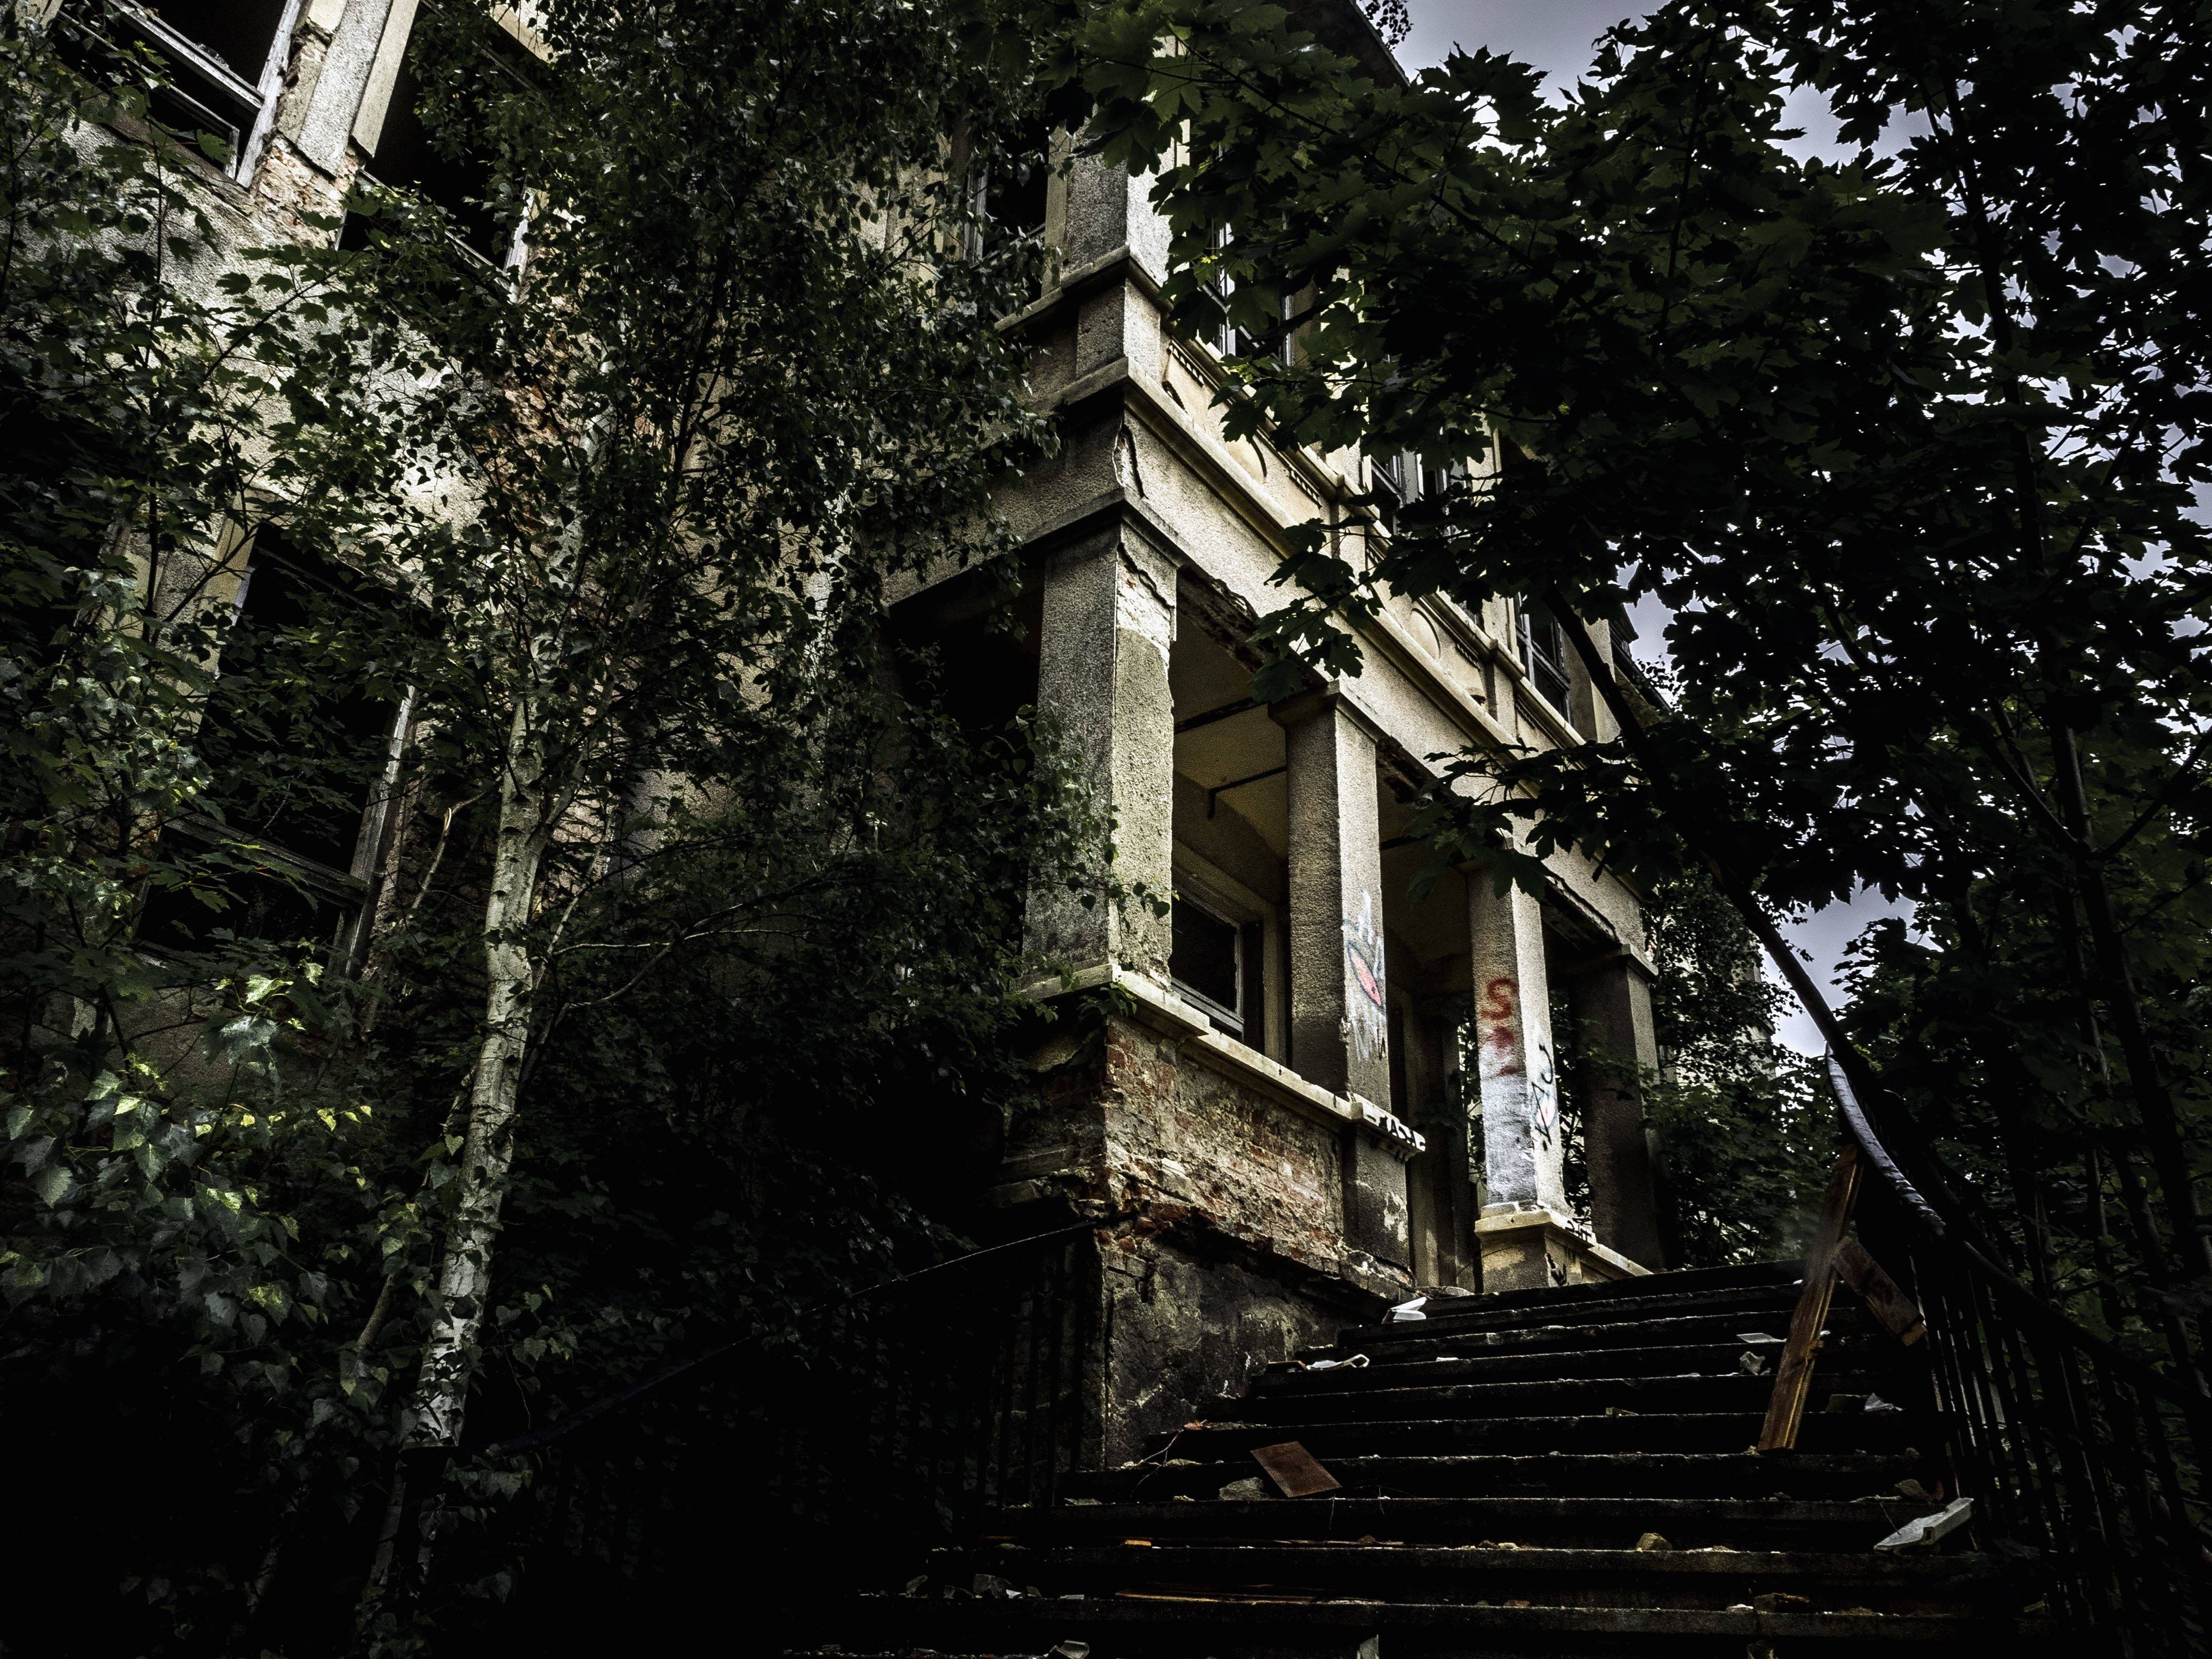 Free picture: staircase, trees, window, abandoned, building ...